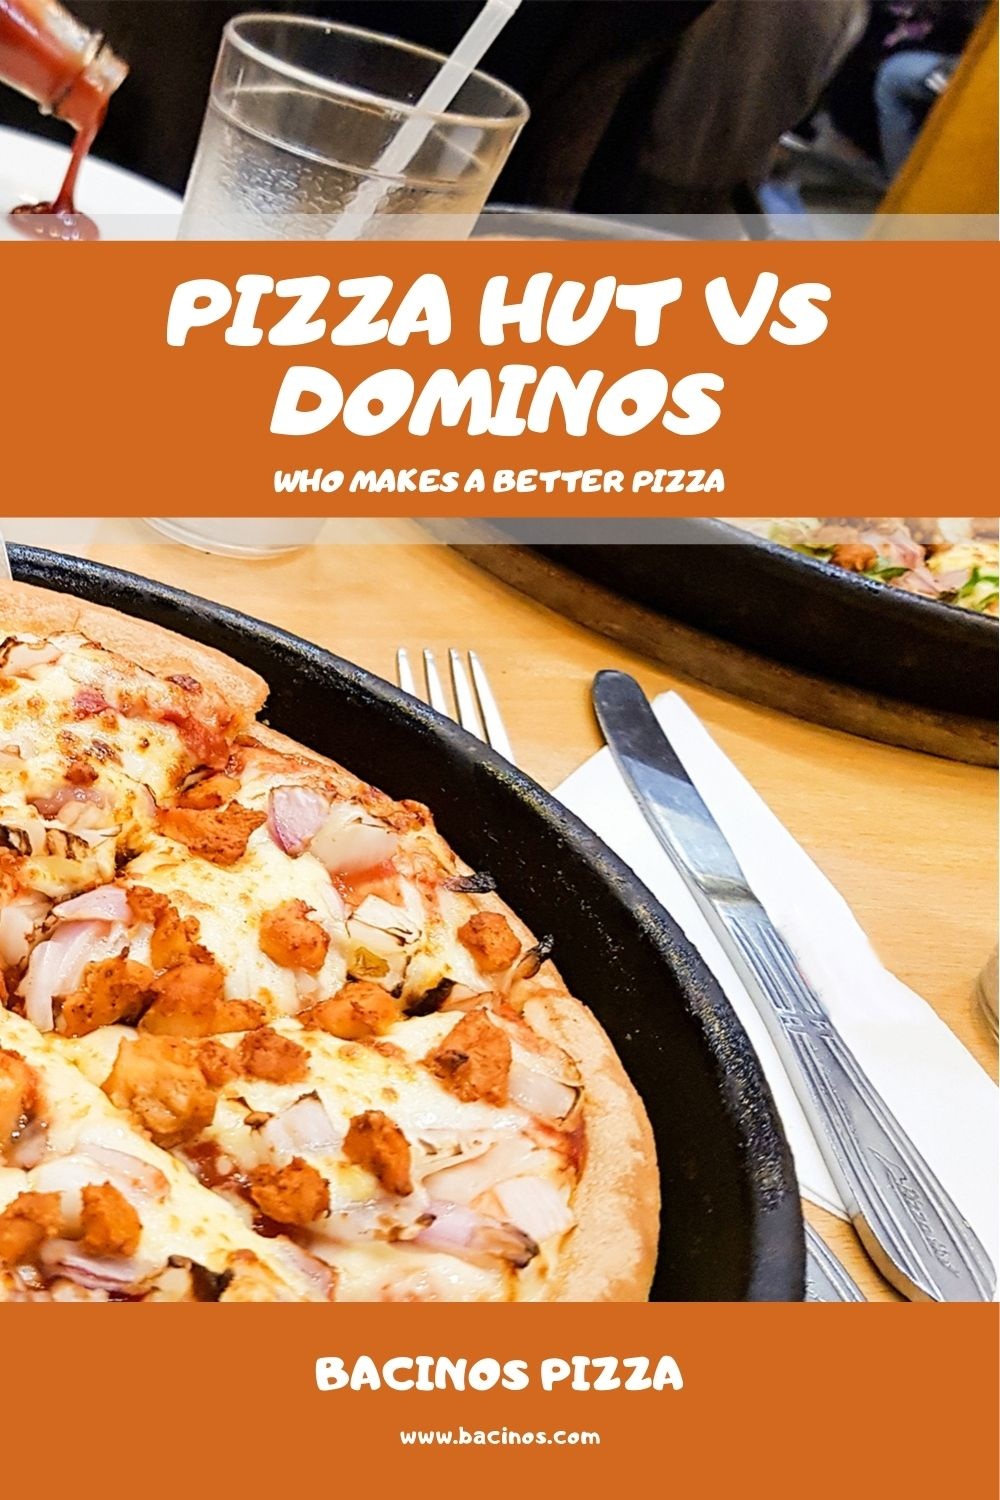 Pizza Hut vs Dominos Who Makes a Better Pizza 1